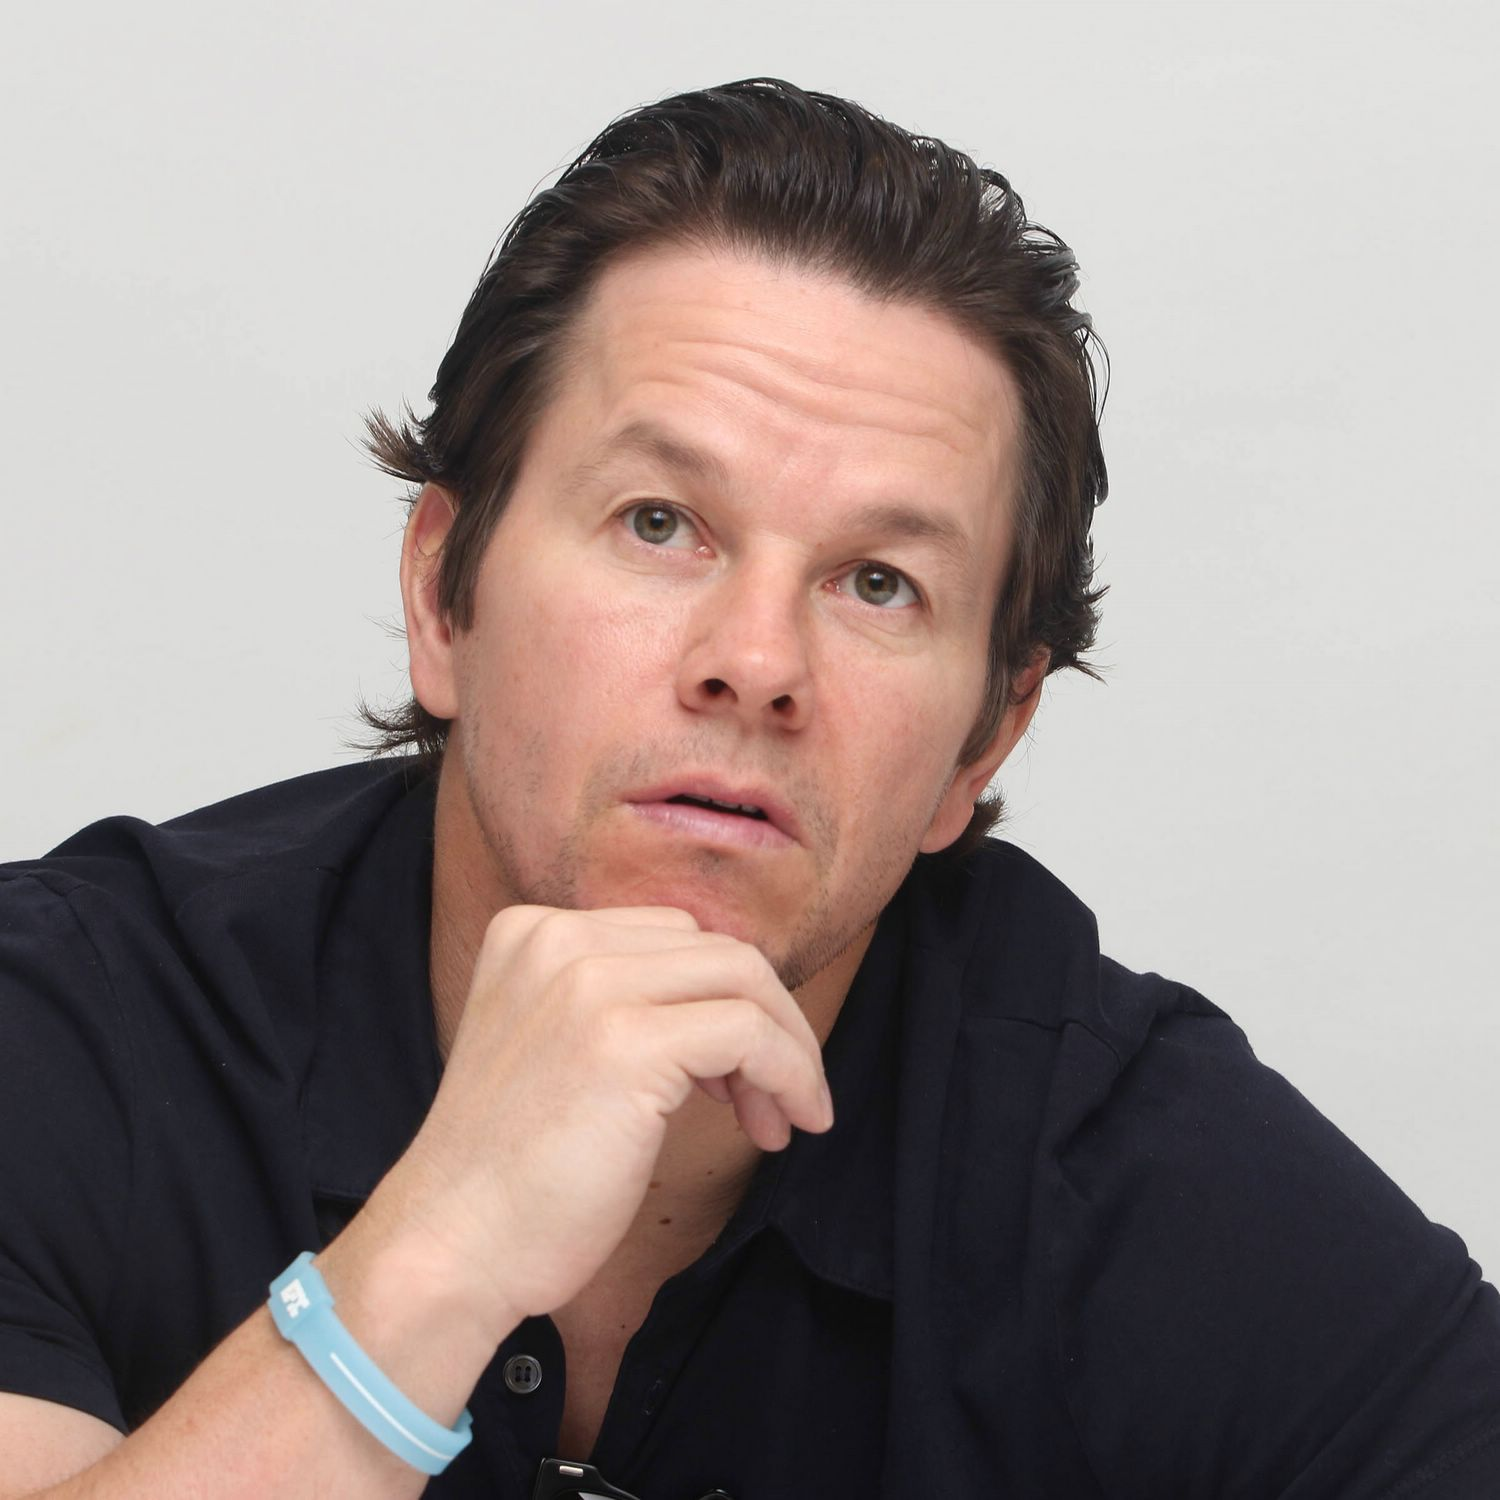 The-gambler-mark-wahlberg-press-conference-1218-1